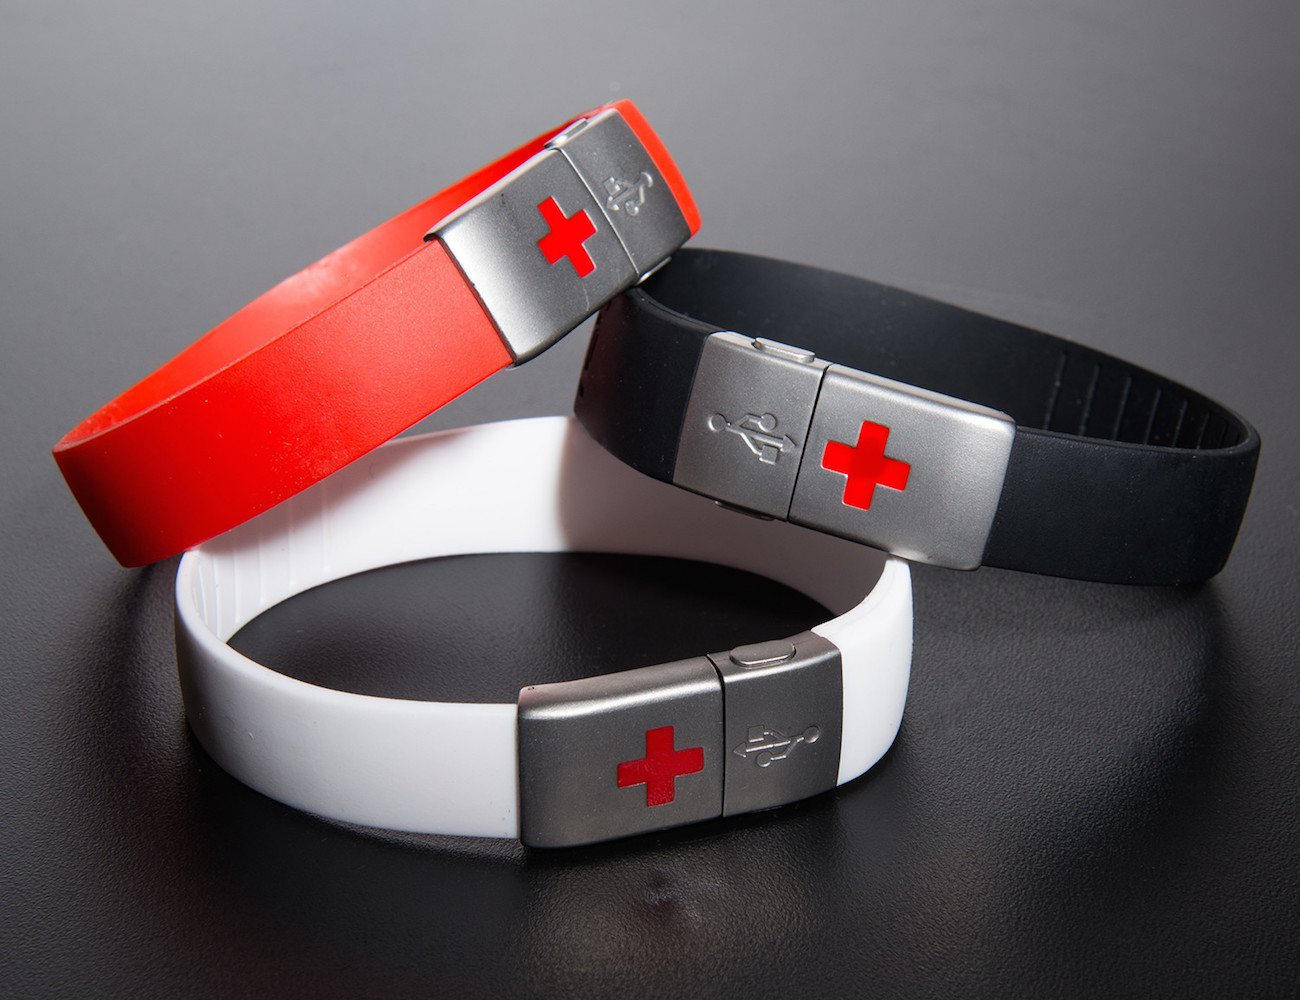 EPIC-id USB Emergency ID Wristband